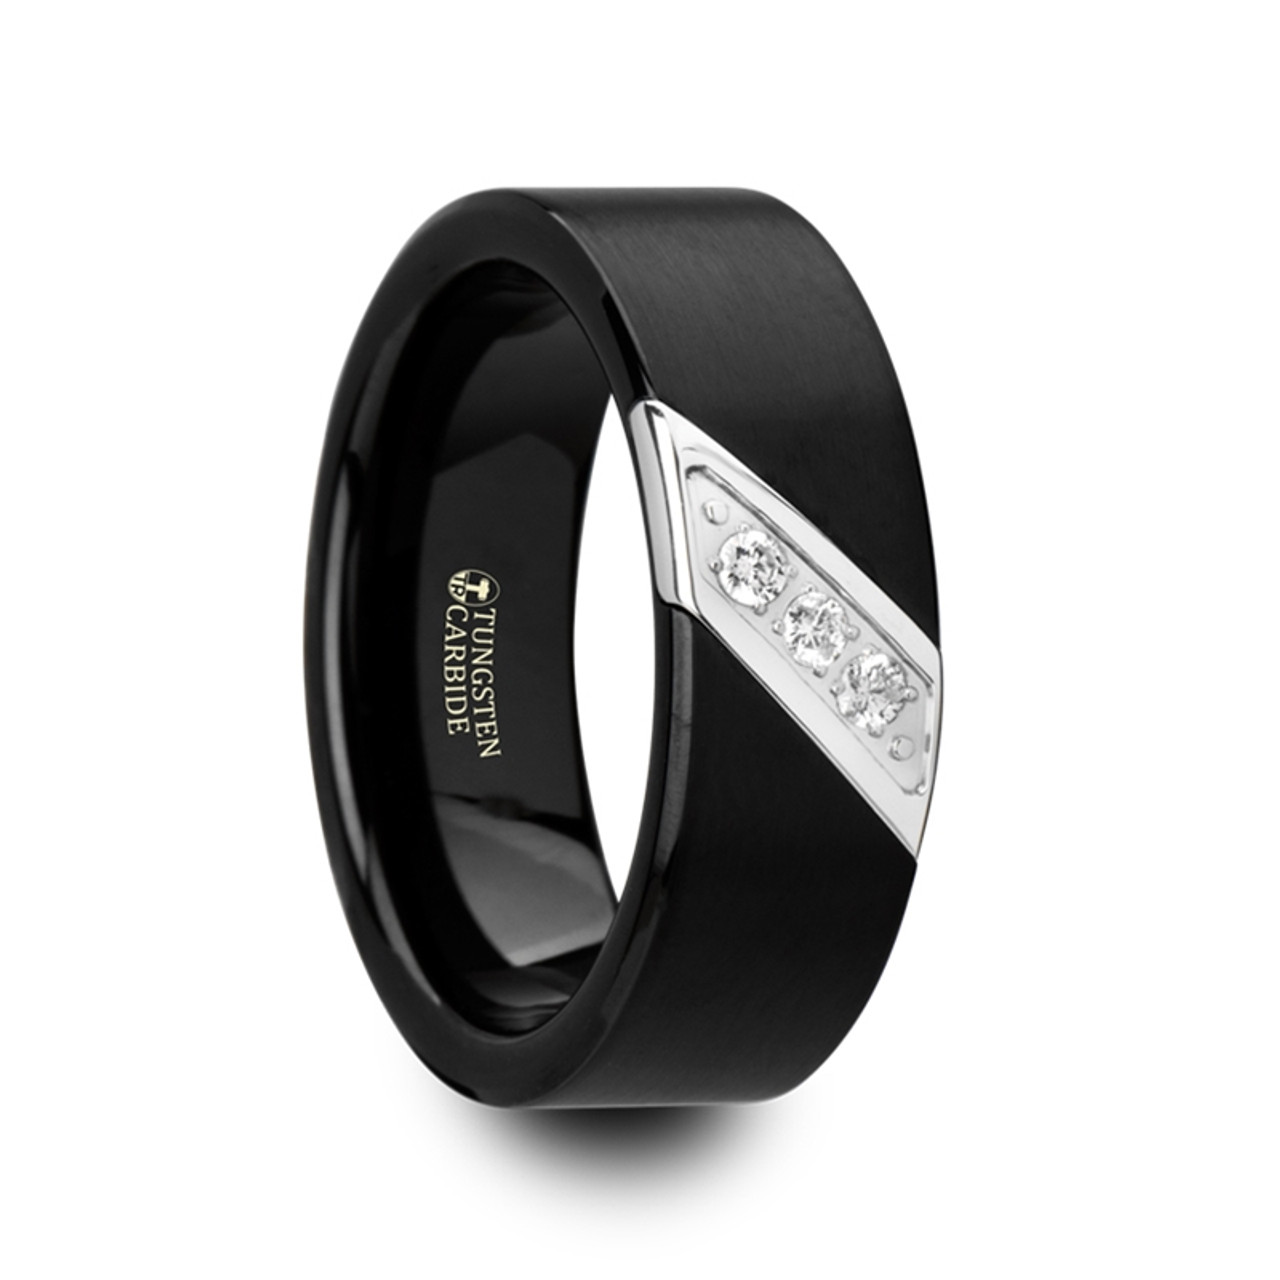 Hippias Black Satin Finished Tungsten Carbide Men S Wedding Band With Diagonal Diamonds Set In Stainless Steel